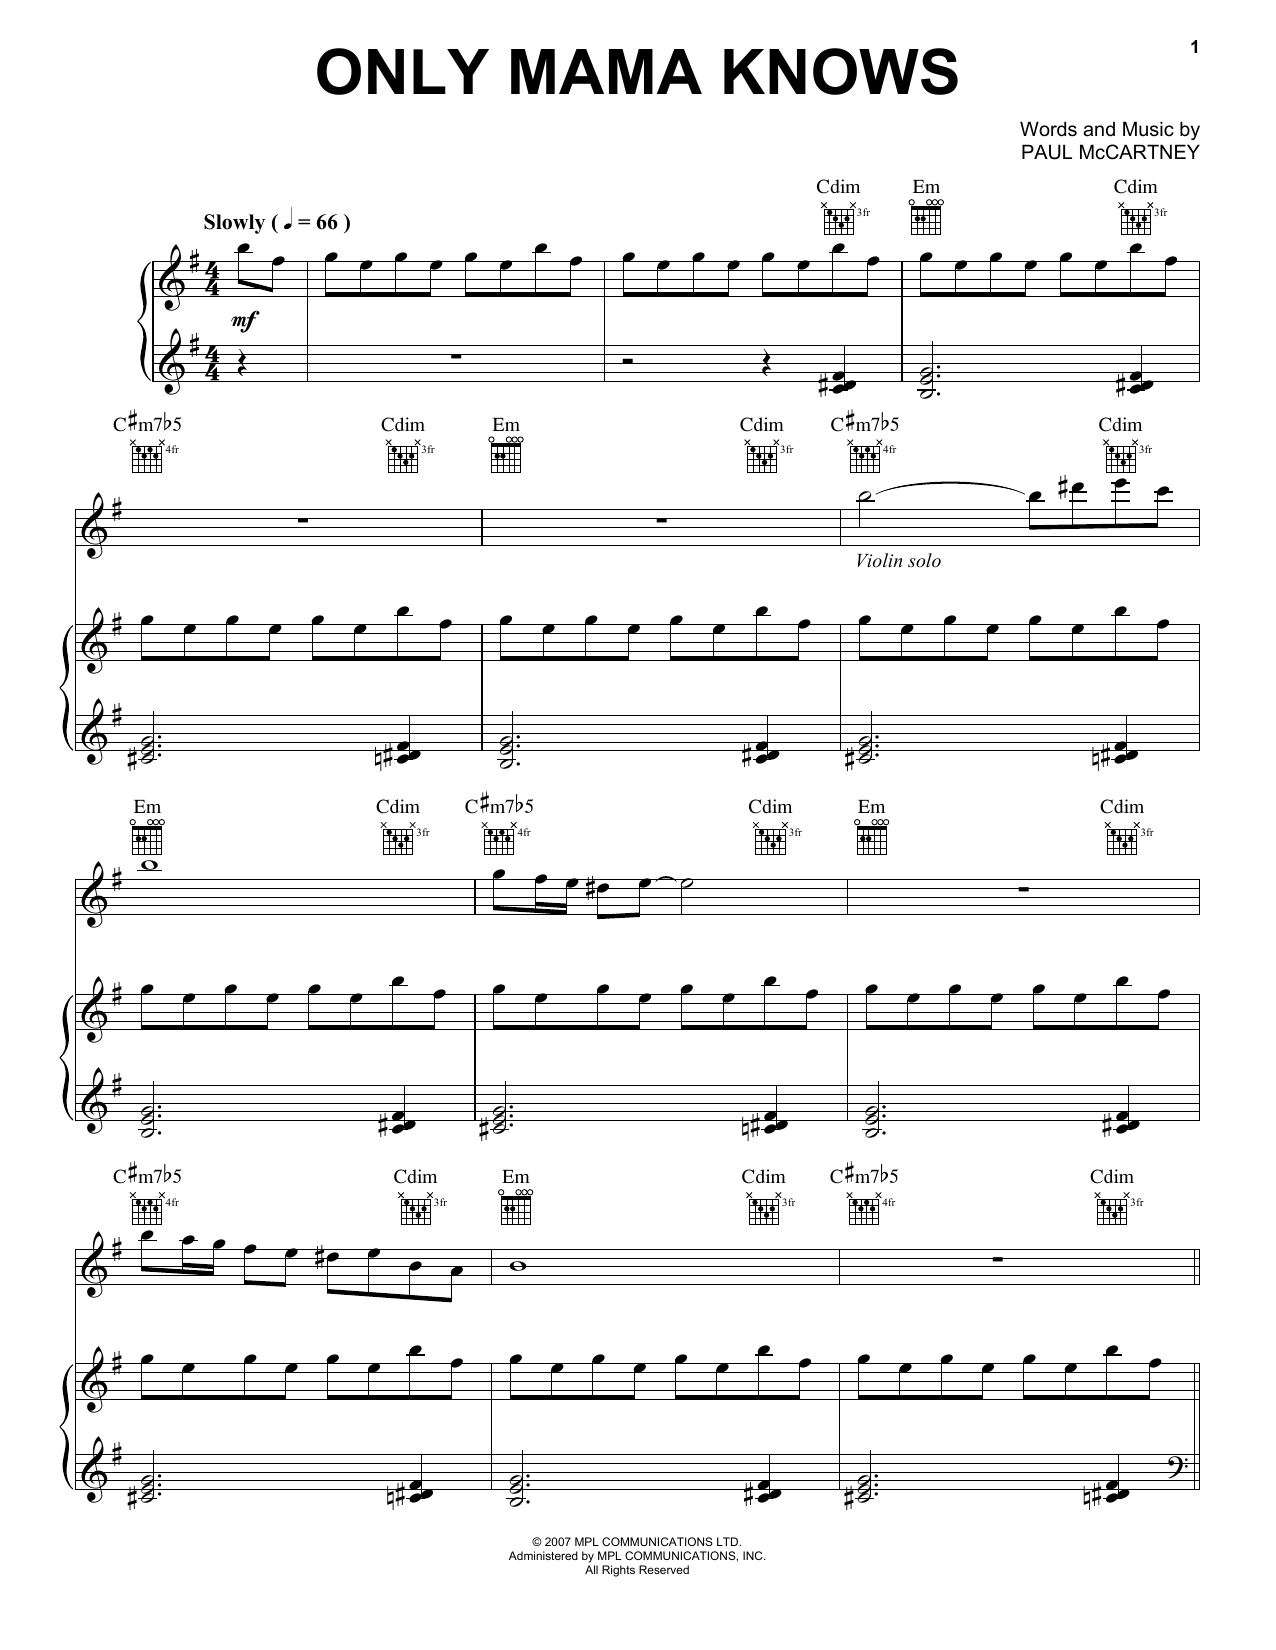 Paul McCartney Only Mama Knows sheet music notes and chords. Download Printable PDF.